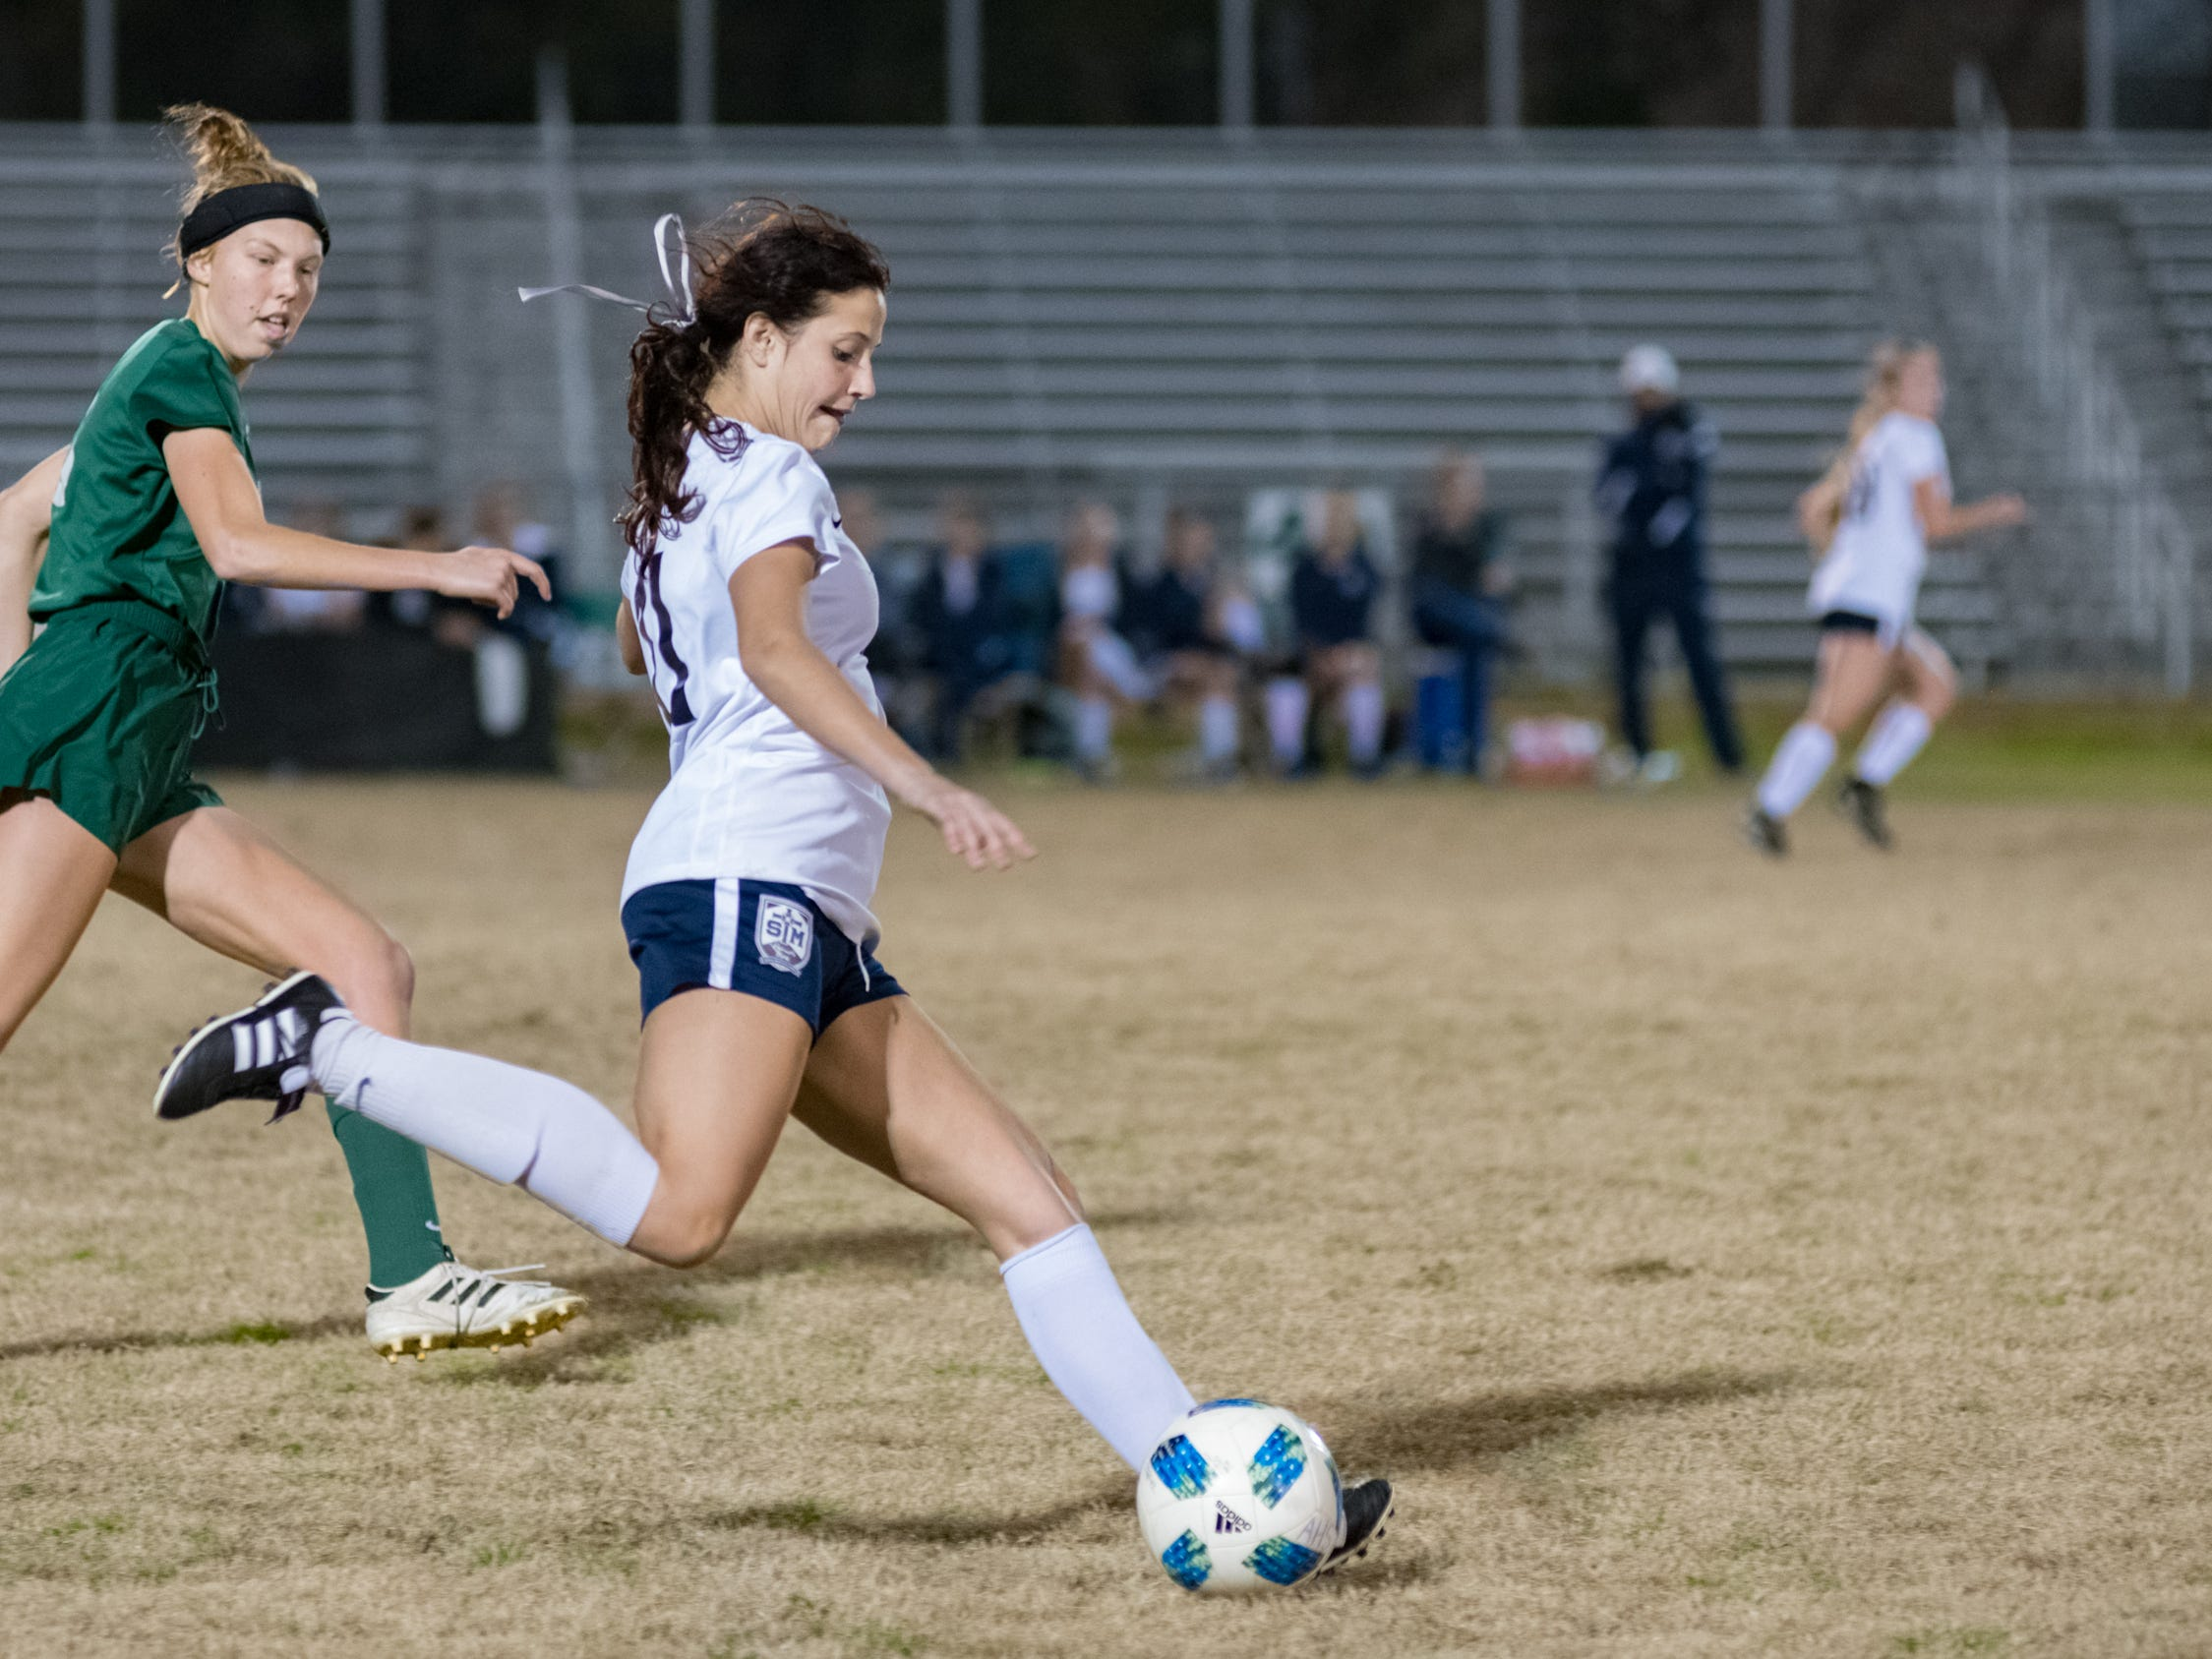 Emily Champion passes the ball as Acadiana takes on STM girls soccer. Monday, Jan. 28, 2019.